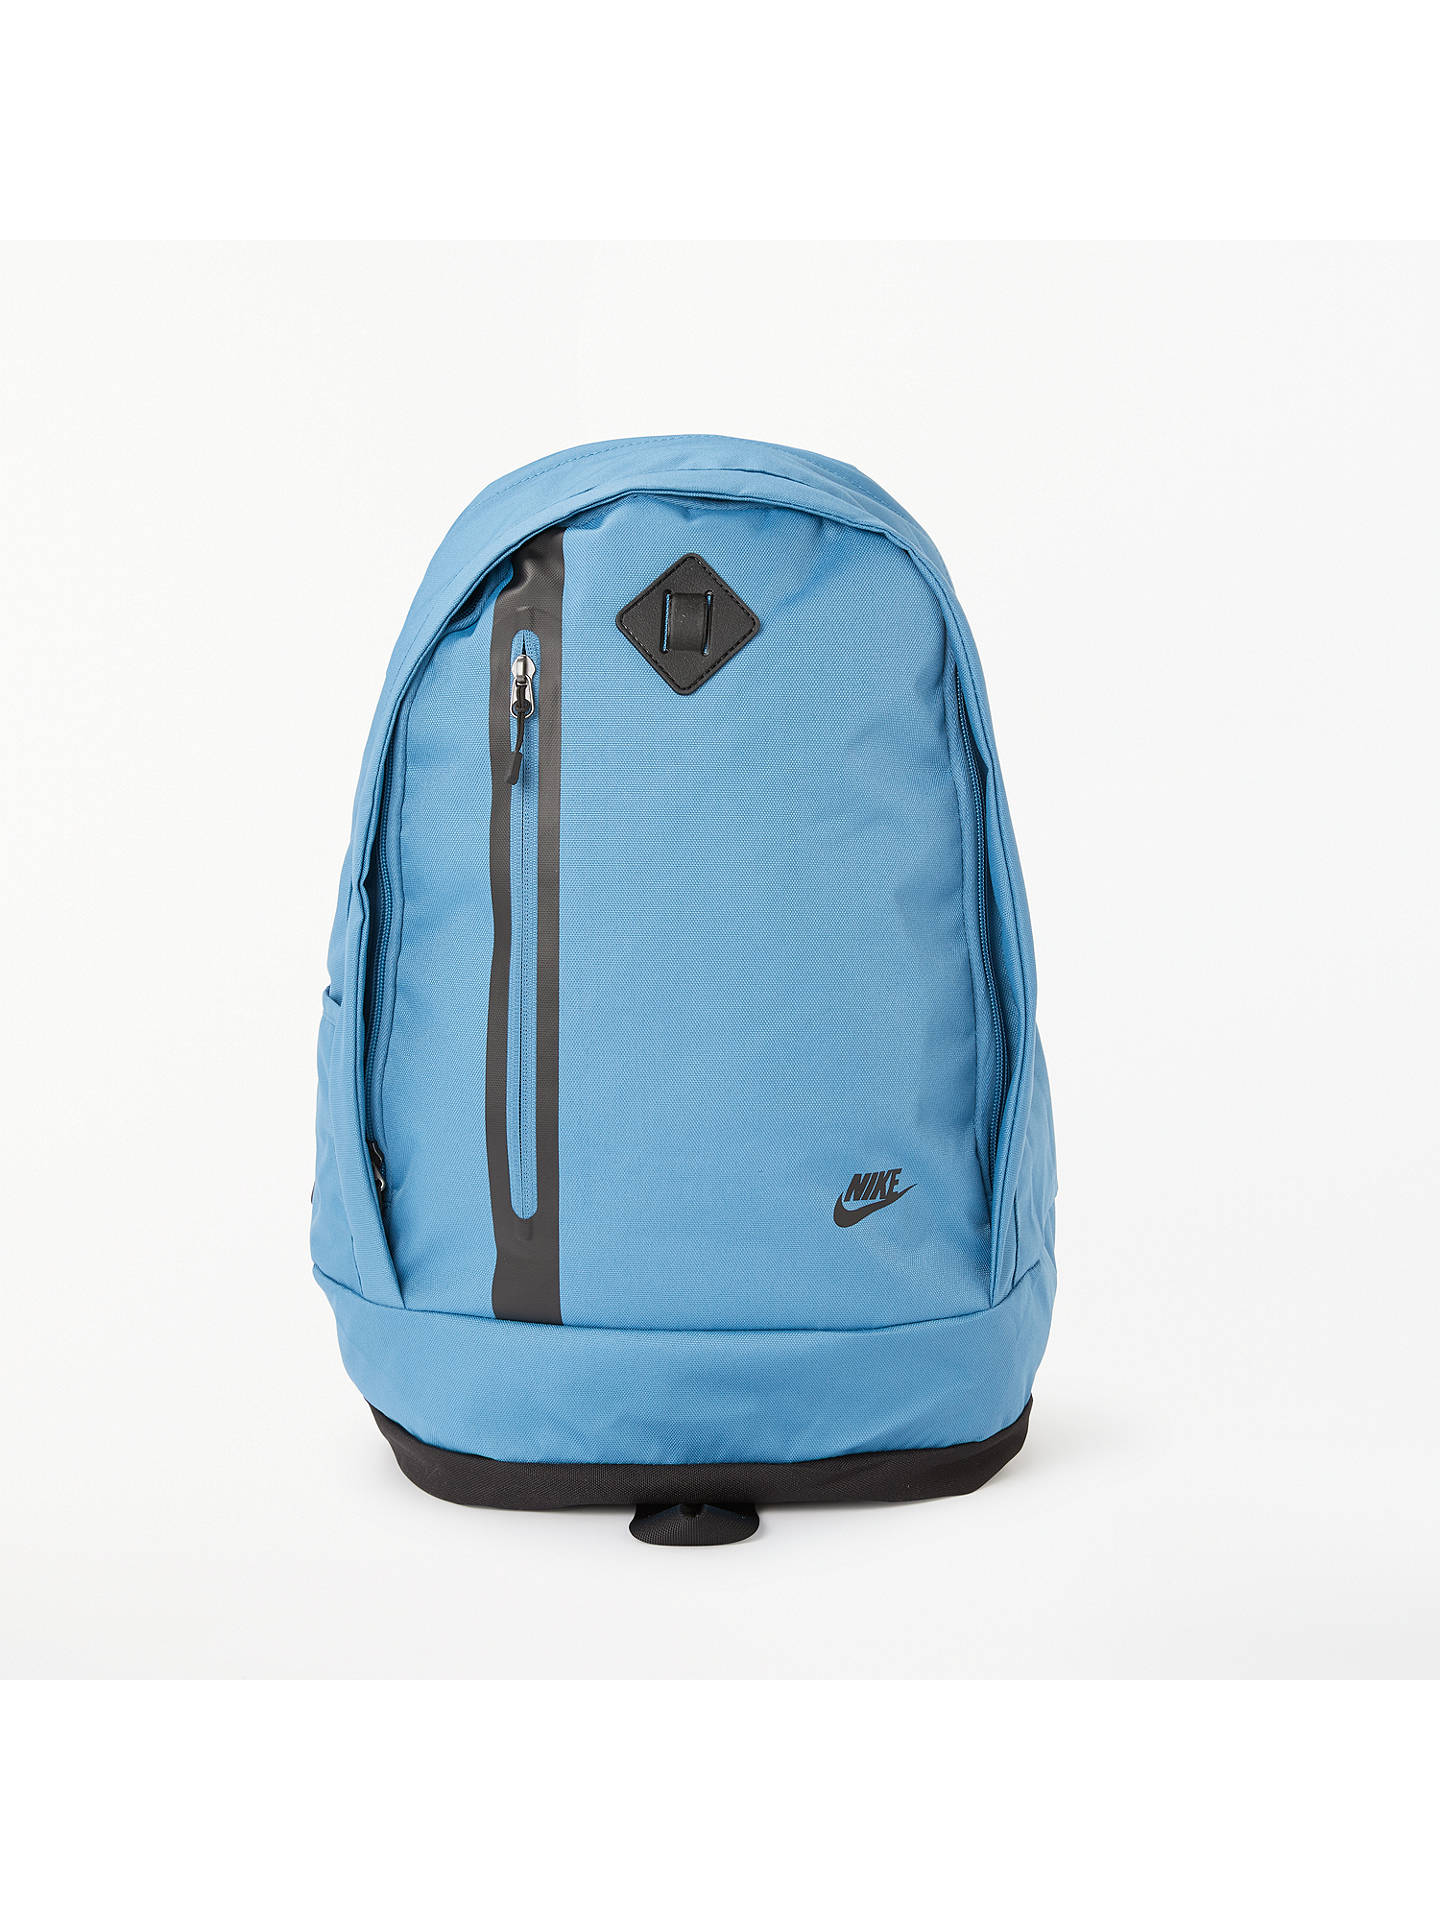 4d3eeb33c0fee Buy Nike Cheyenne Backpack, Grey Online at johnlewis.com ...